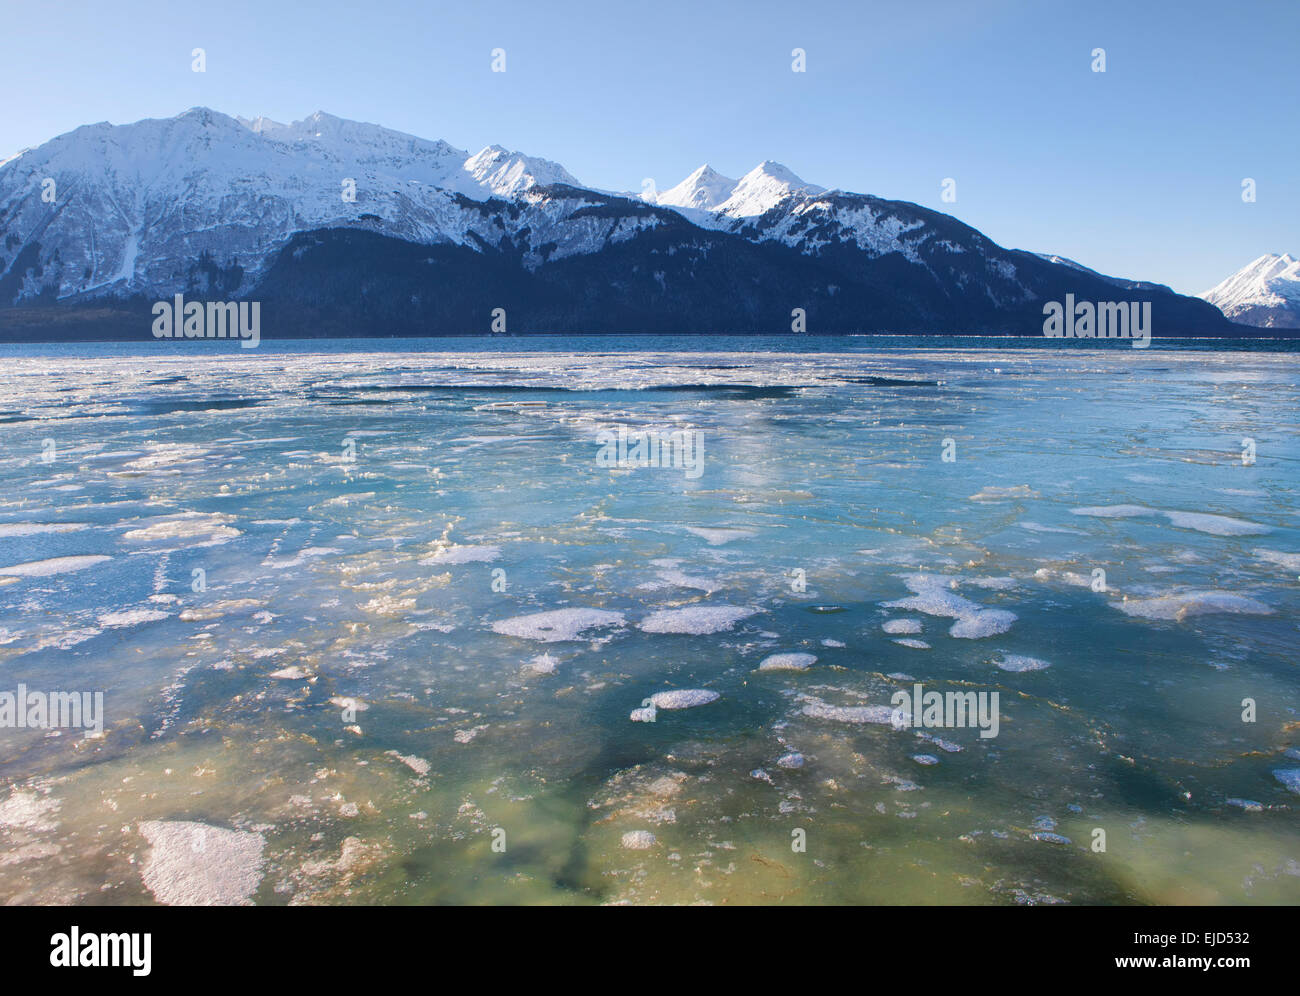 Alaska haines county - Frozen Water Of The Chilkat Inlet Near Haines Alaska In Winter On A Sunny Day